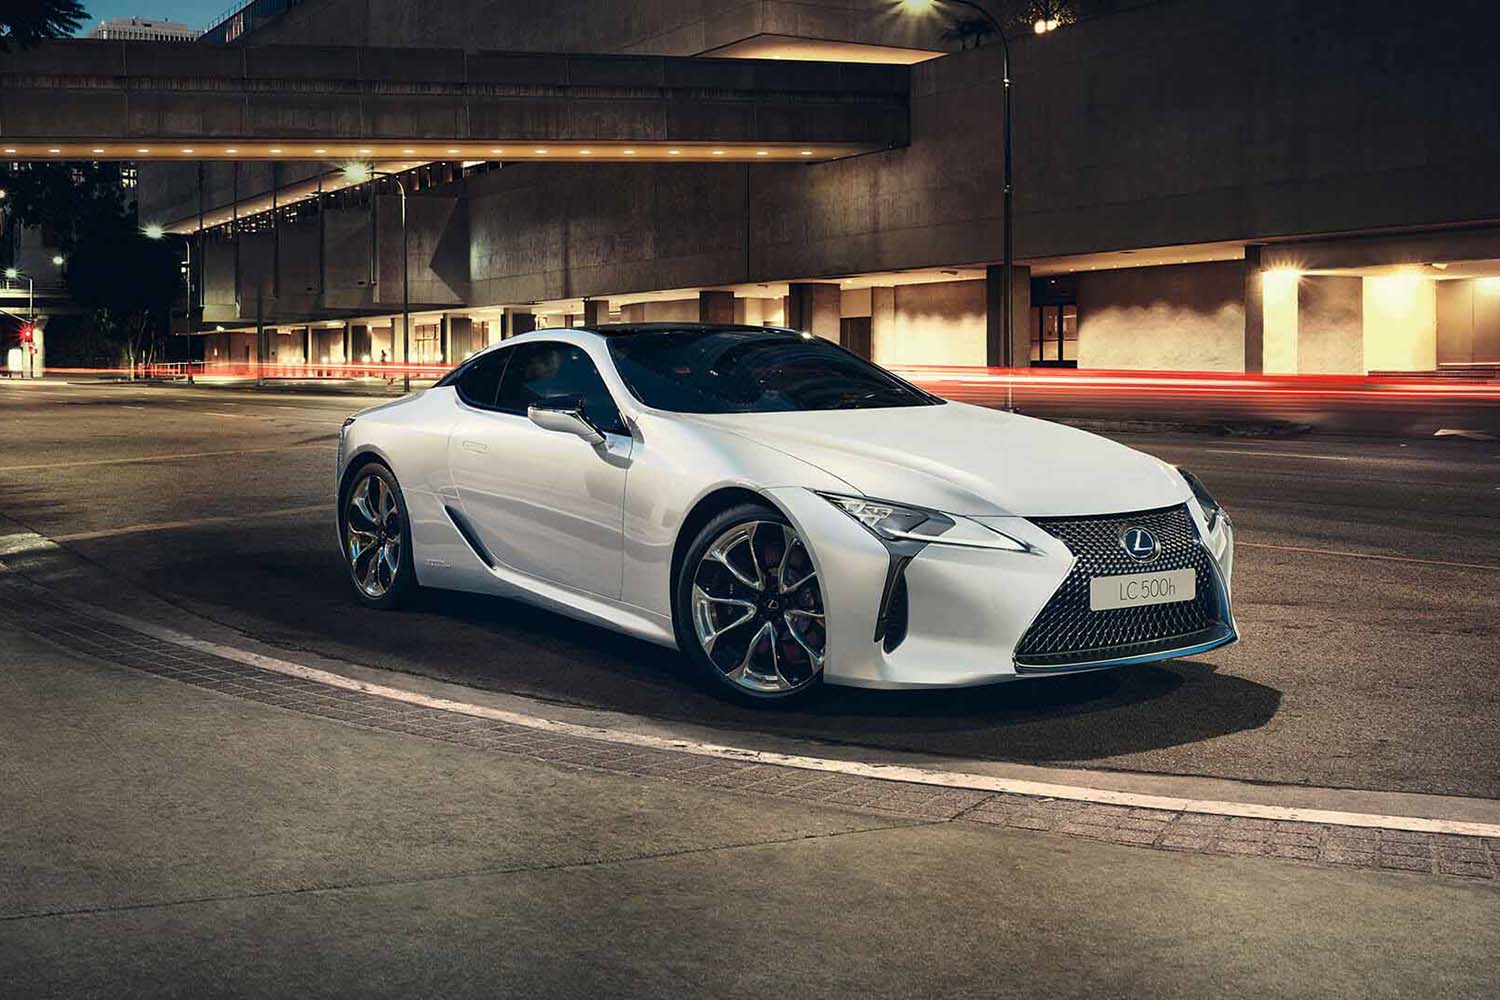 Top 10 Sustainable Luxury Cars for 2020: Lexus LC500H